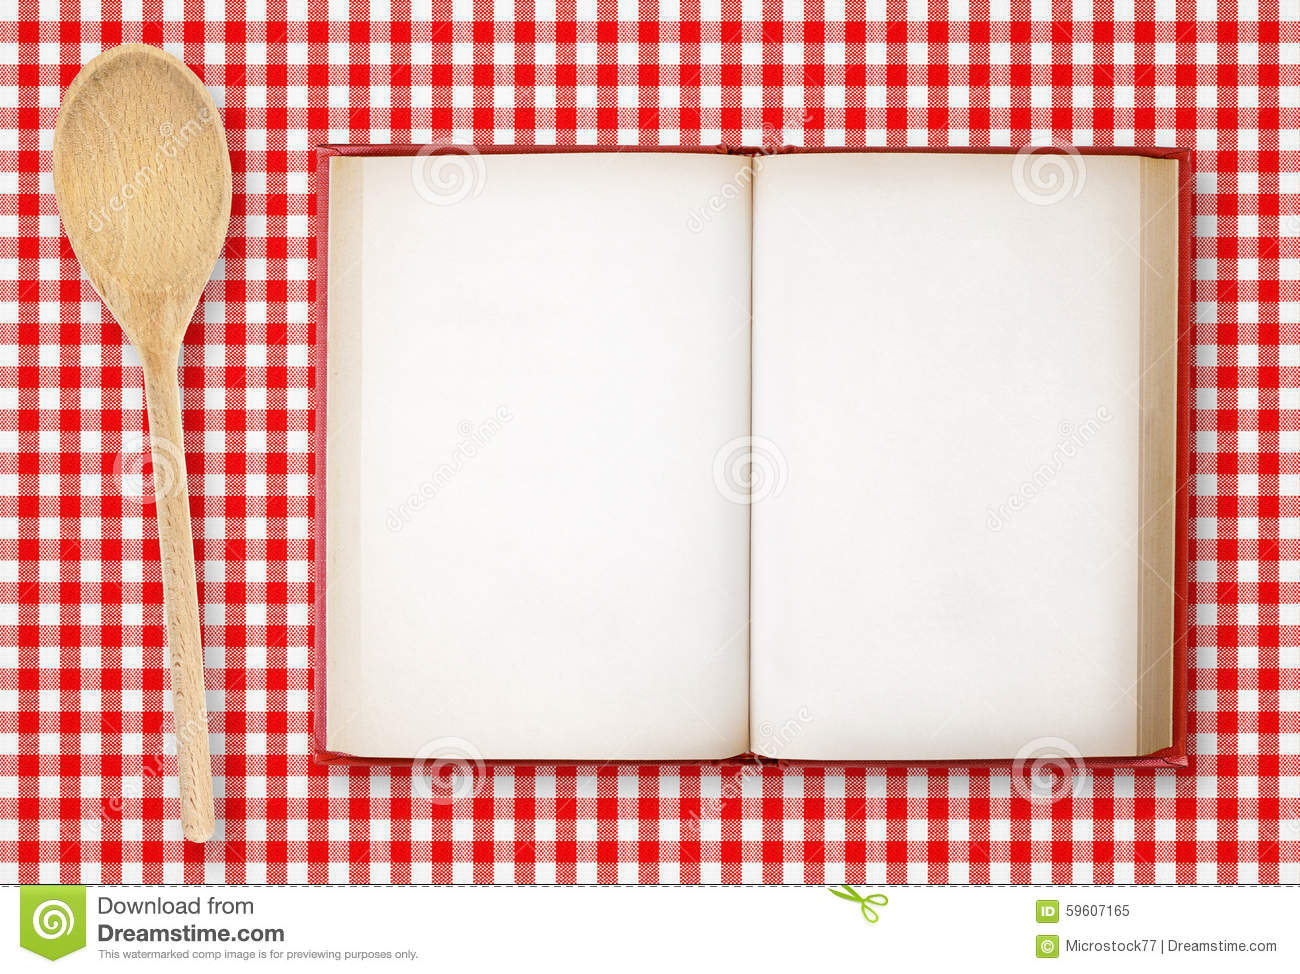 Cookbook Red Checkered Cover : Recipe book on checkered tablecloth stock image of